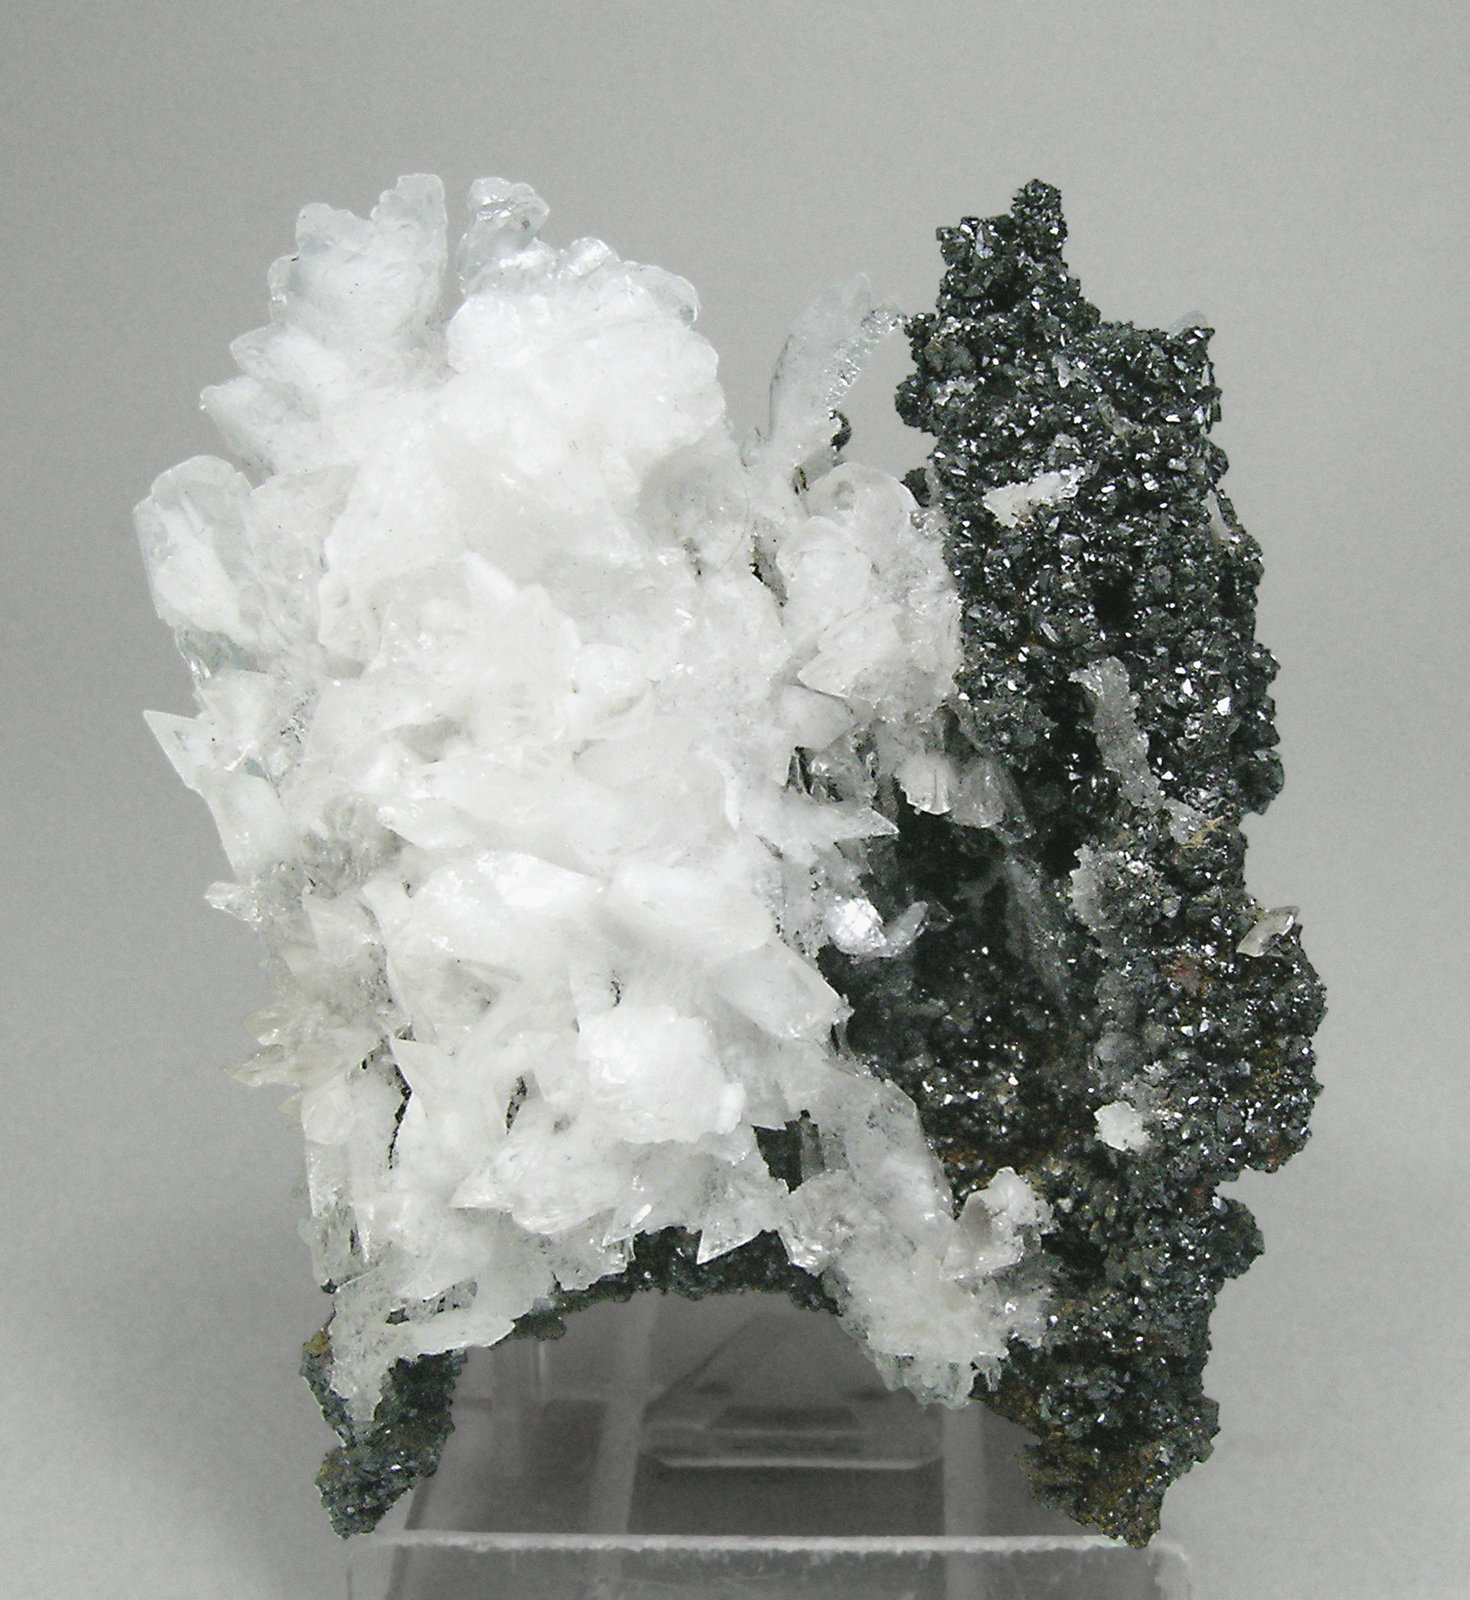 specimens/s_imagesM9/Descloizite-NV86M9f.jpg